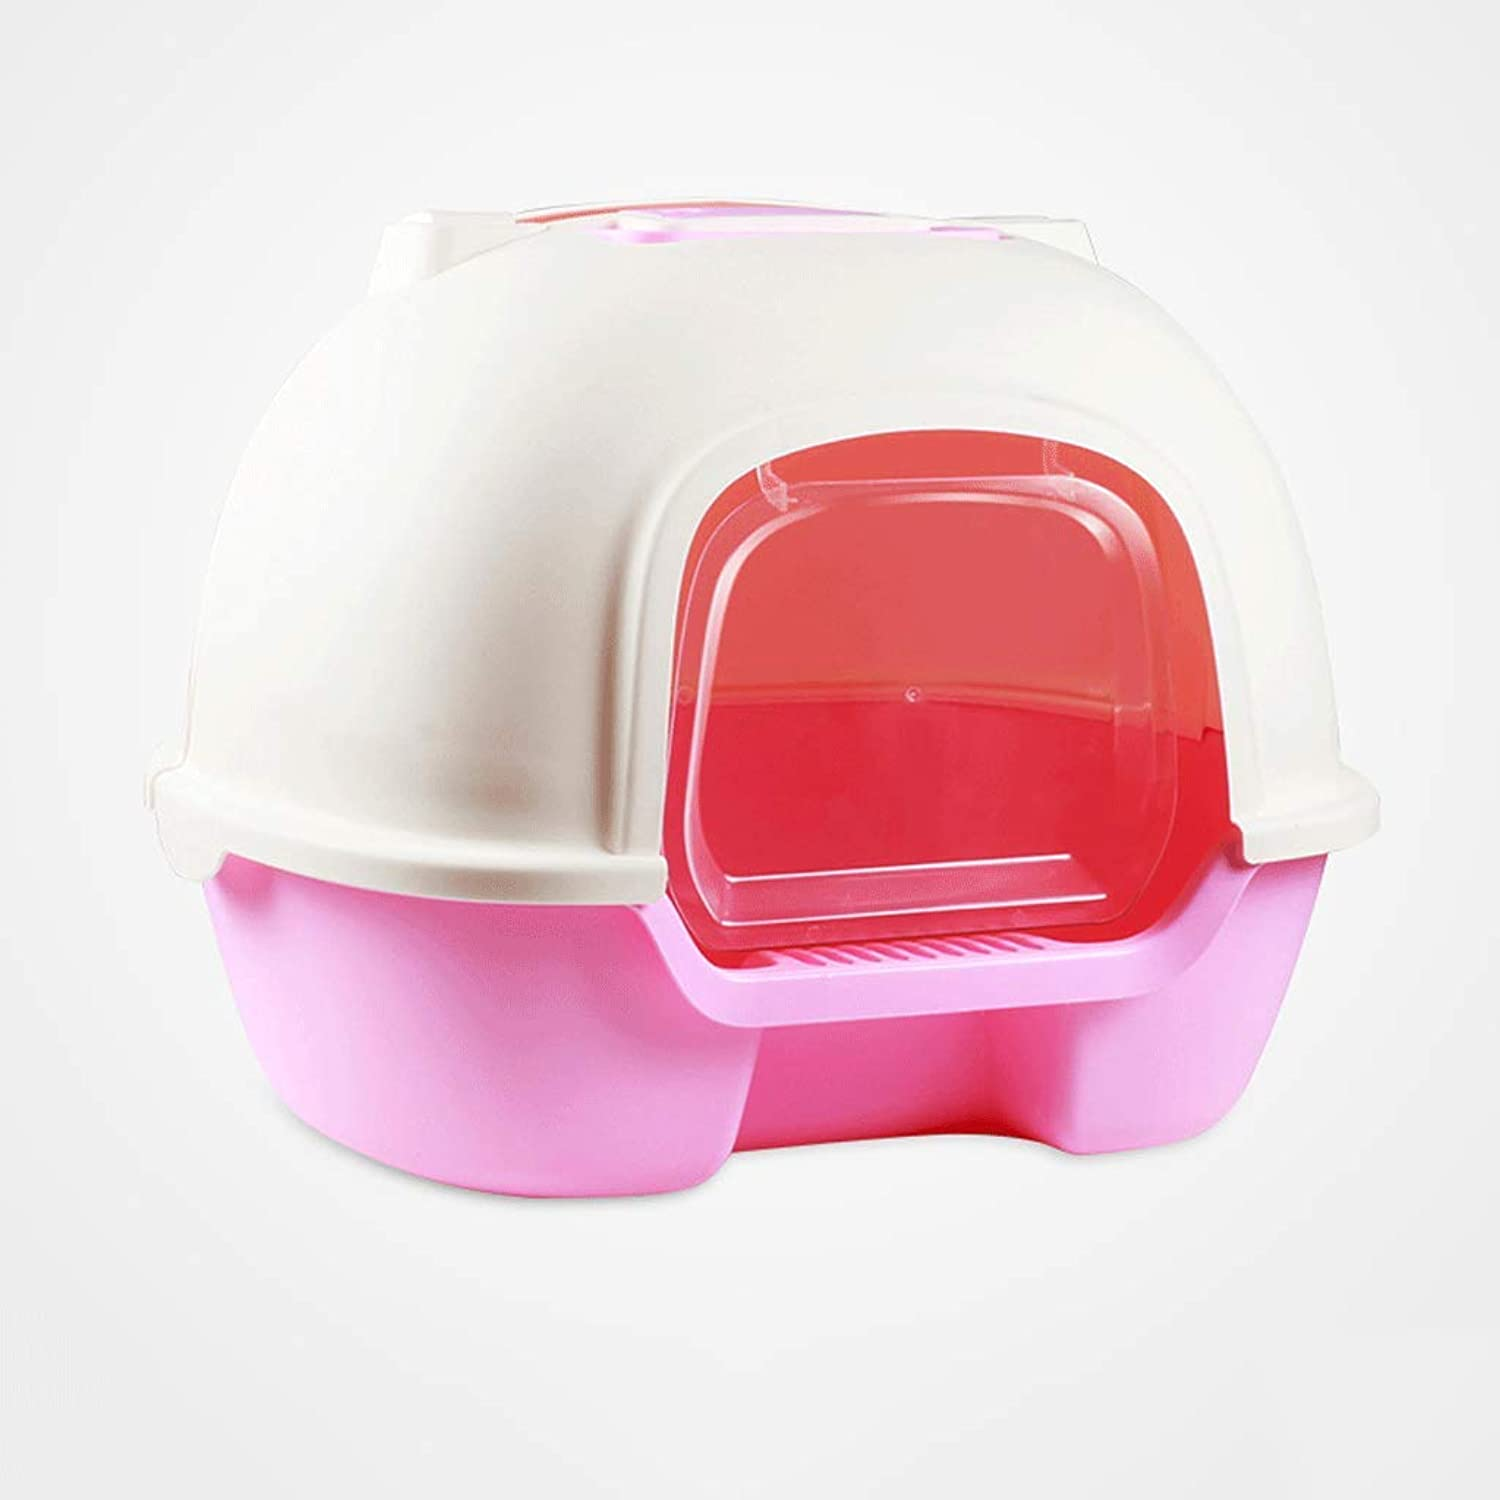 Cat Litter Box Rear Clamshell Pan Fully Enclosed Deodorant AntiSplashing Cat Toilet with Scoop and Handle (color   Pink)